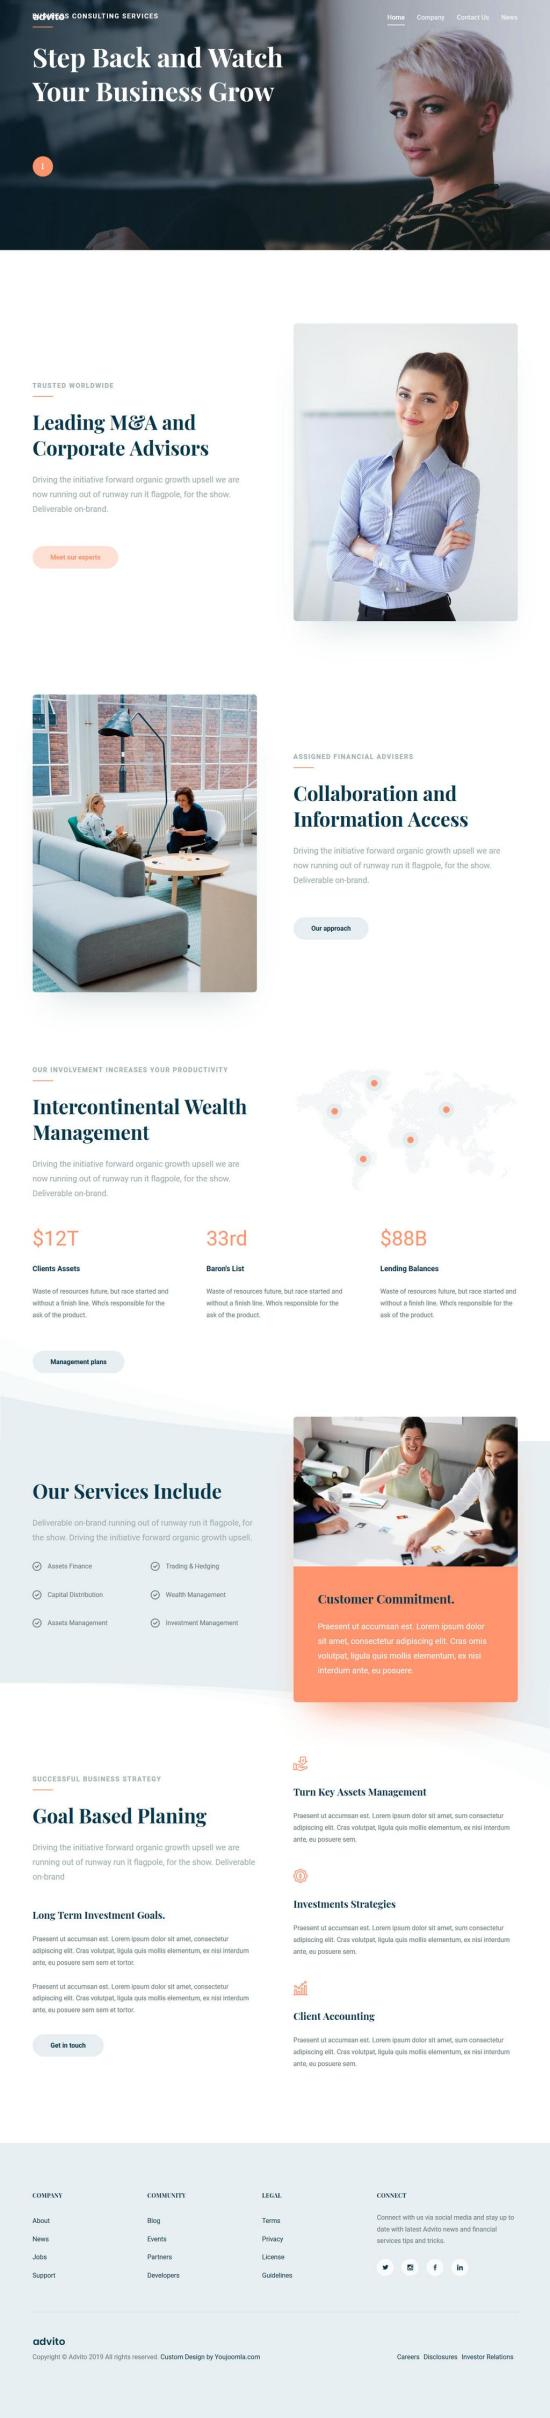 advito joomla template 01 - Advito Joomla Template